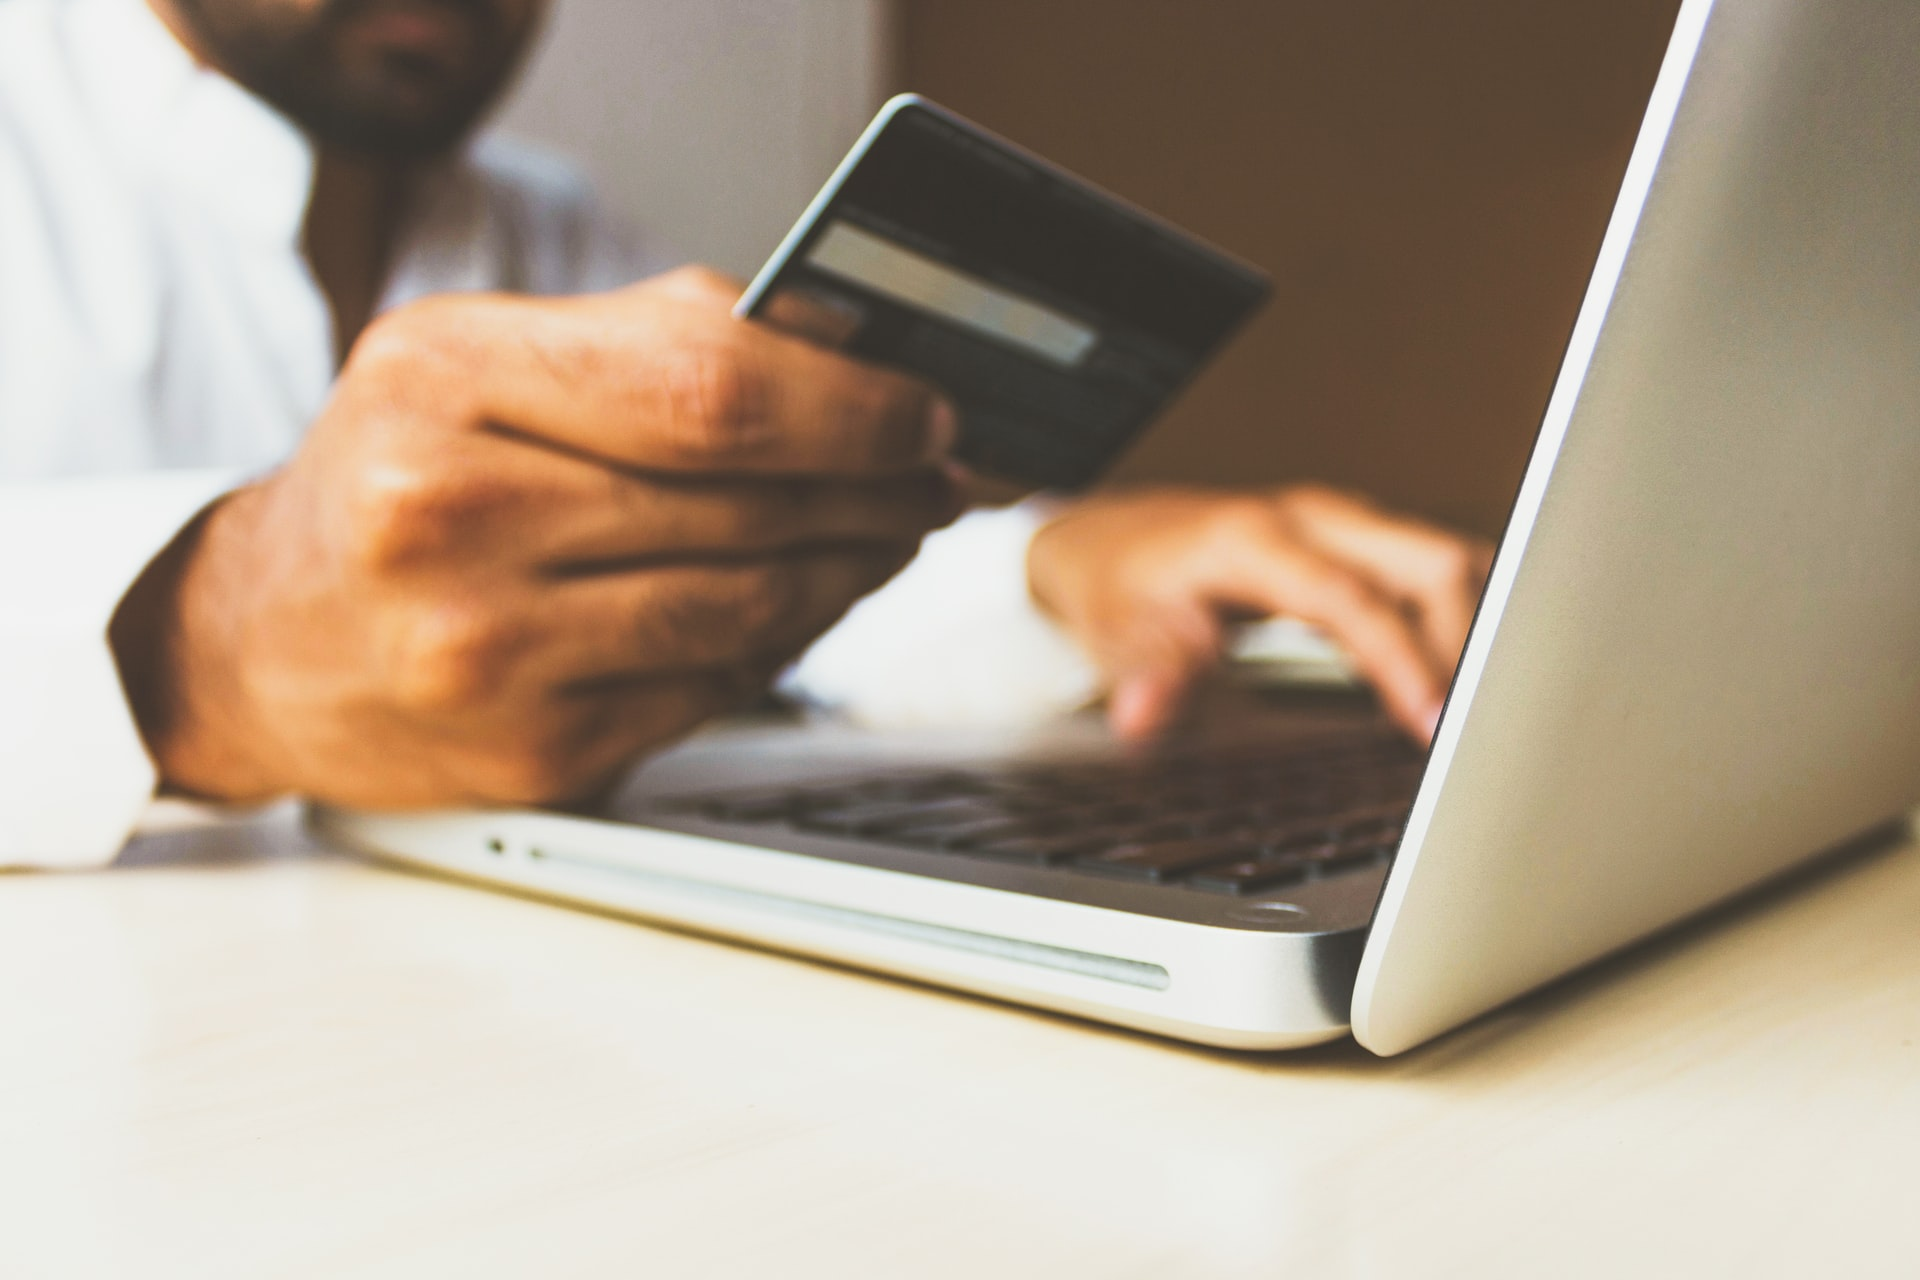 business man on laptop with credit and debit card